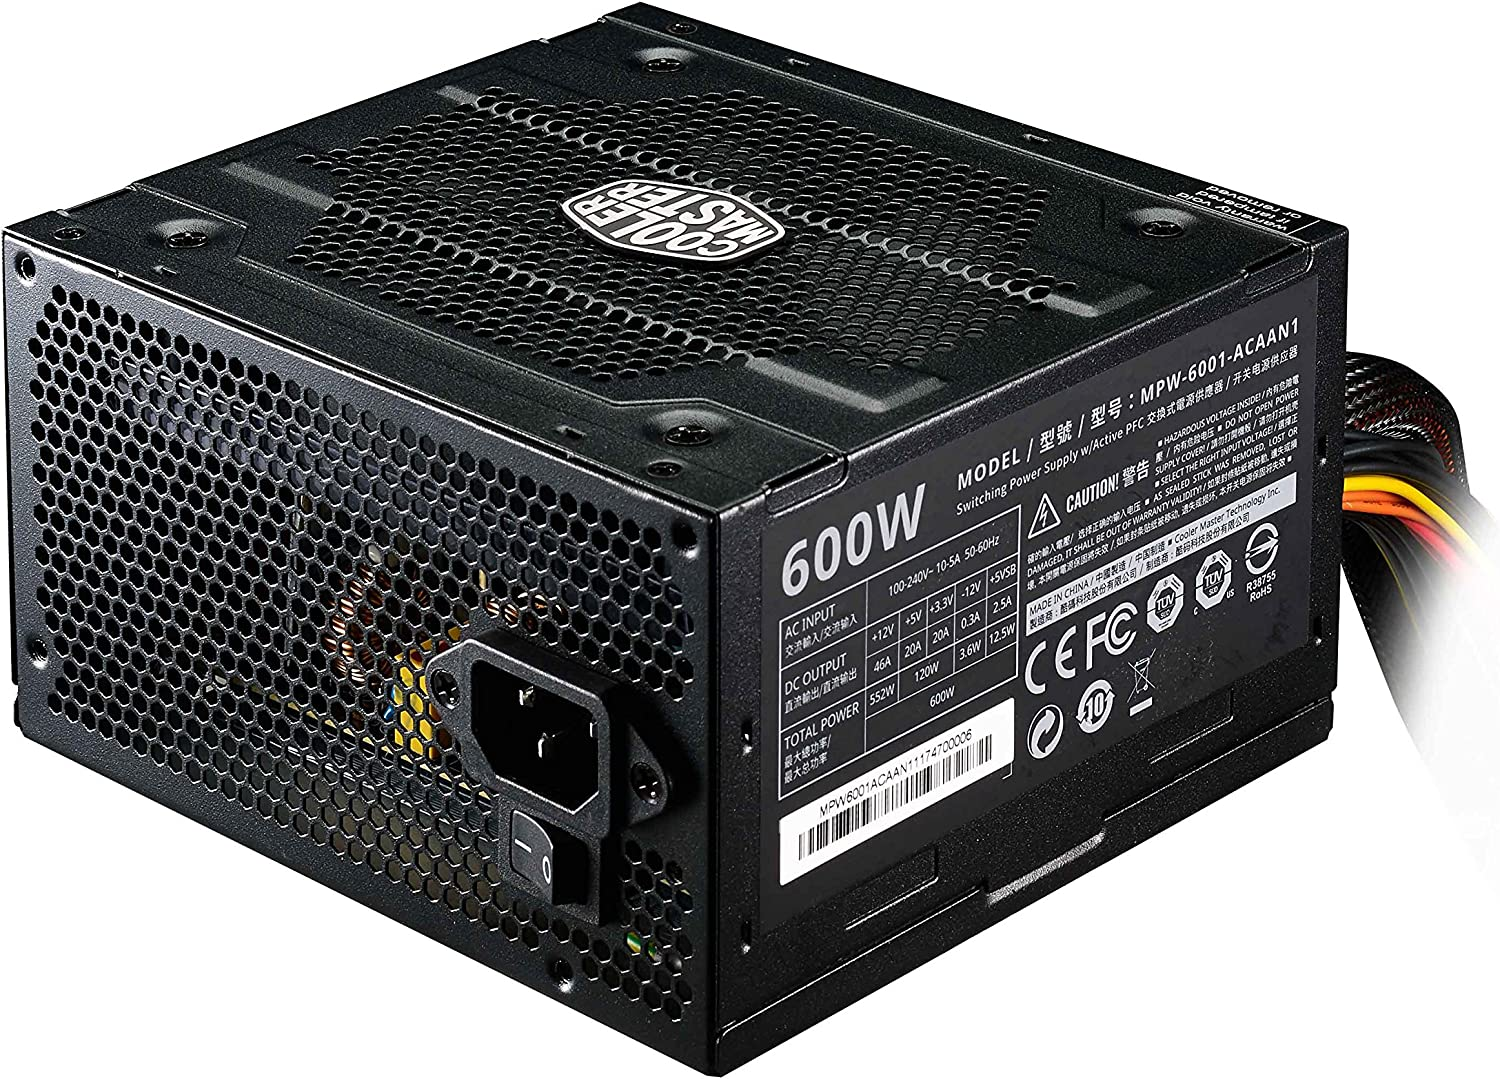 Amazon.com: Cooler Master Elite v3 600 watts ATX Power Supply, Quiet 120mm  Fan, PCI-E support, 3 Year Warranty, Black: Computers & Accessories